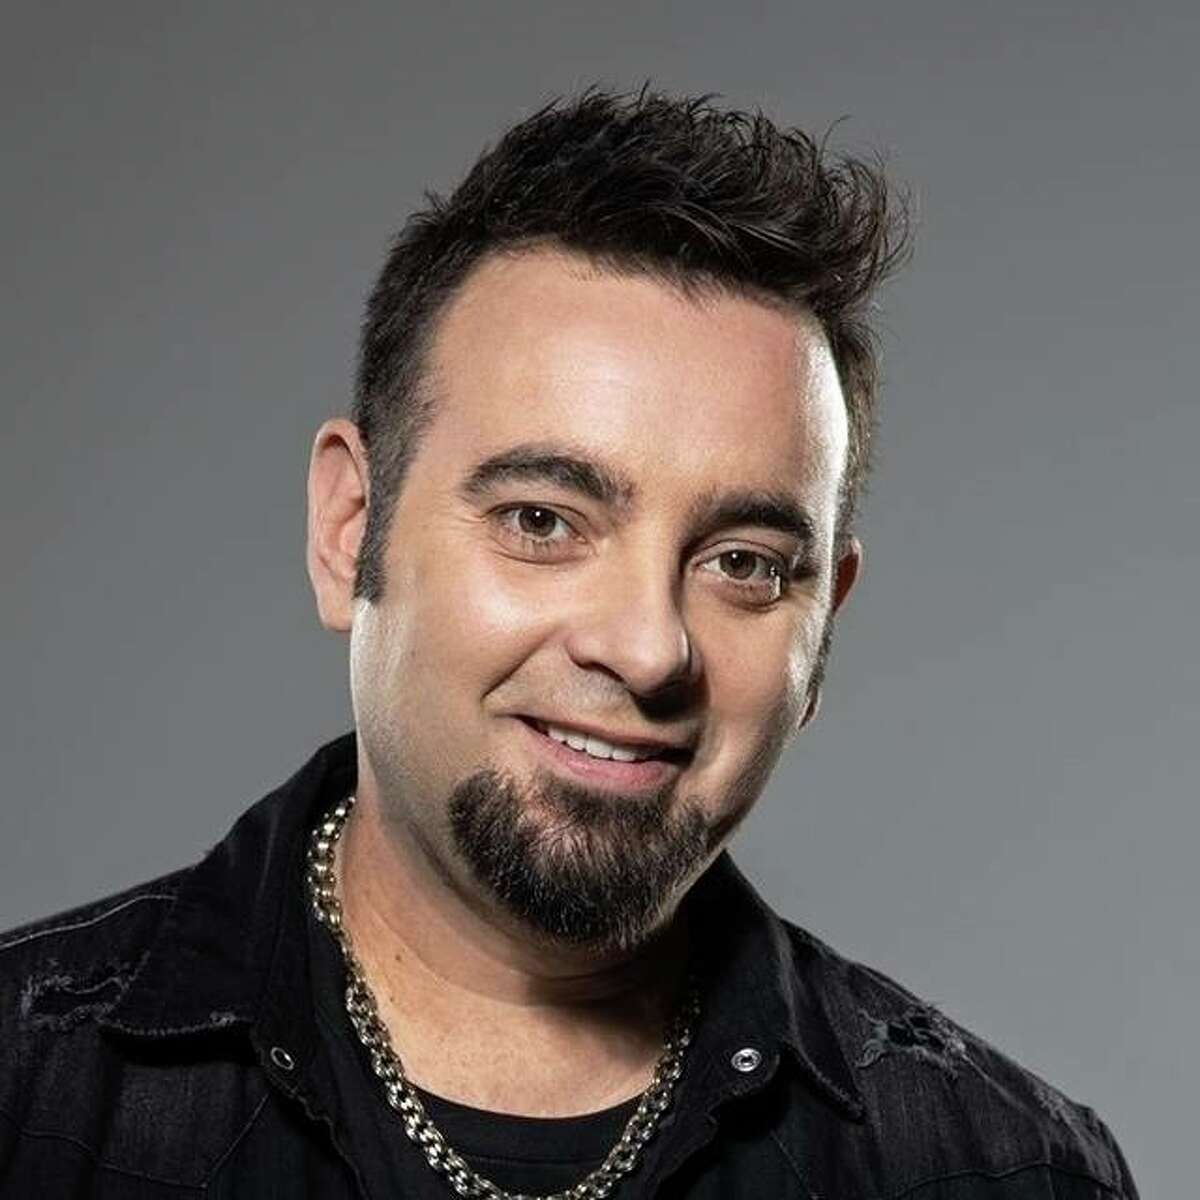 Go to the Alton River Dragons baseball game Thursday not only to support the hometown team, but to see the founding member of NSYNC and hear him sing the national anthem! The first pitch is at 6:35 p.m. against the Cape Catfish at Lloyd Hopkins Field, 98 Arnold Palmer Road, Alton.